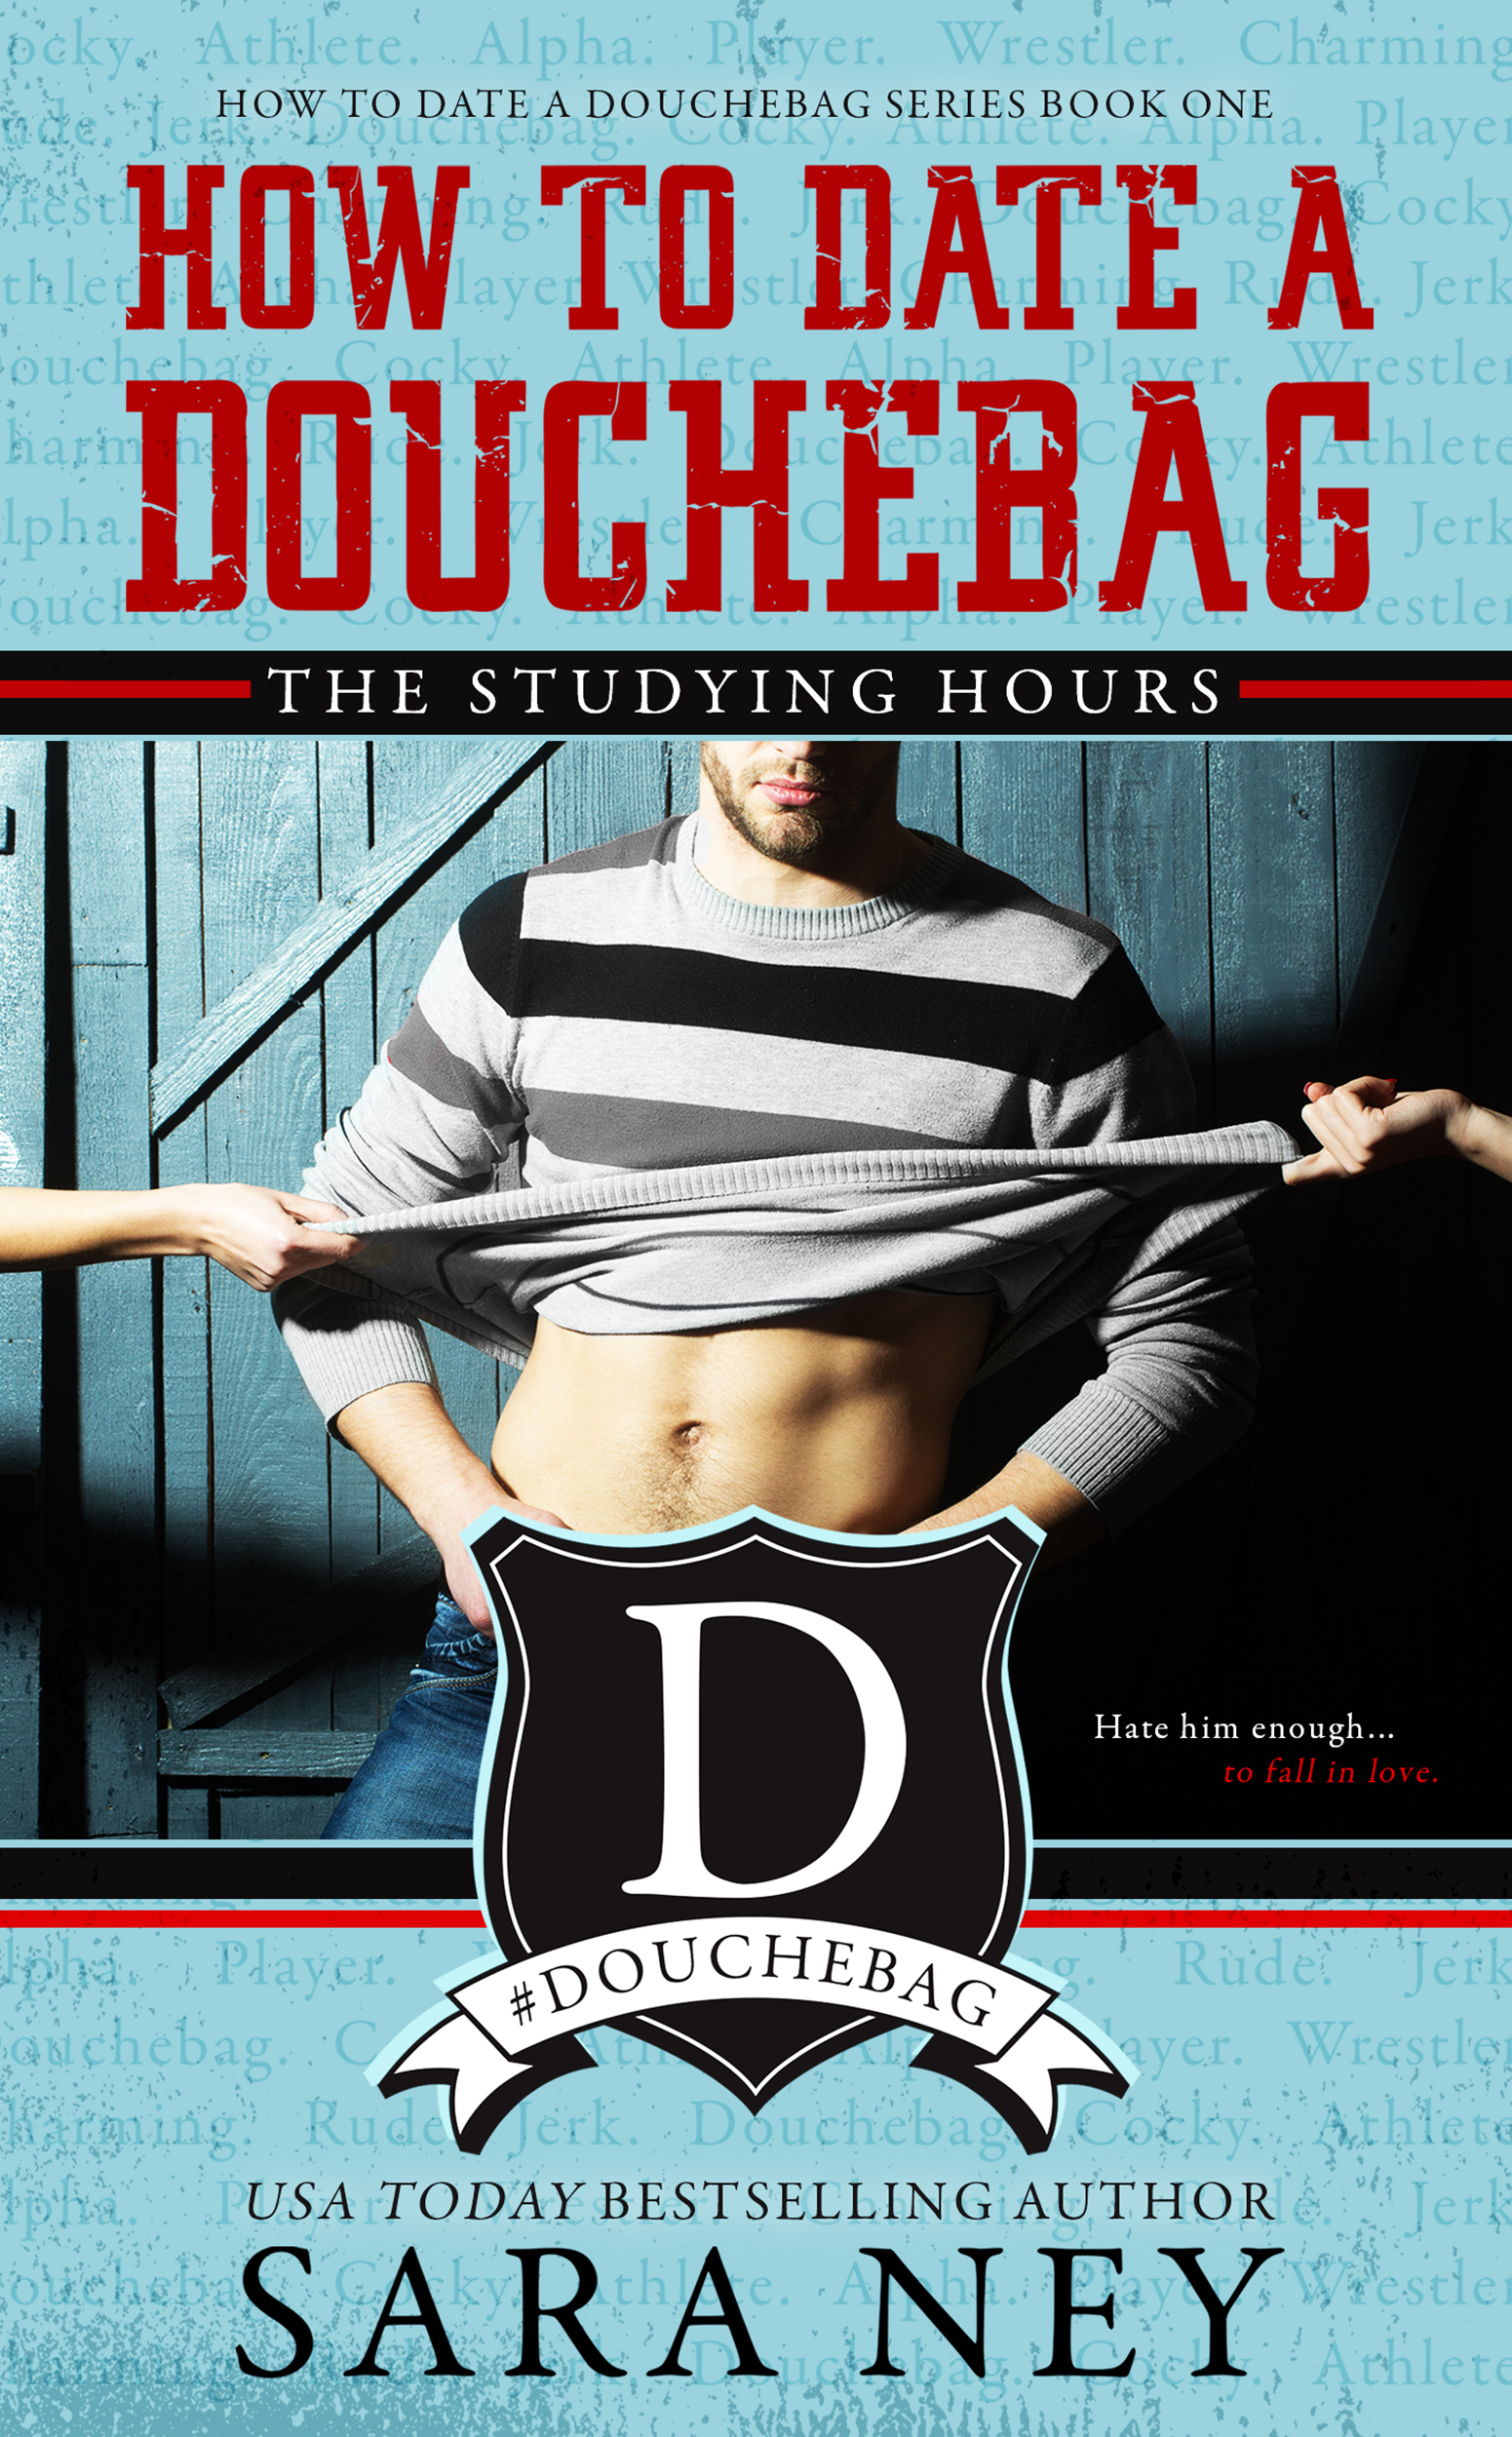 HOW TO DATE A DOUCHEBAG-THE STUDYING HOURS Cover – Sara Ney